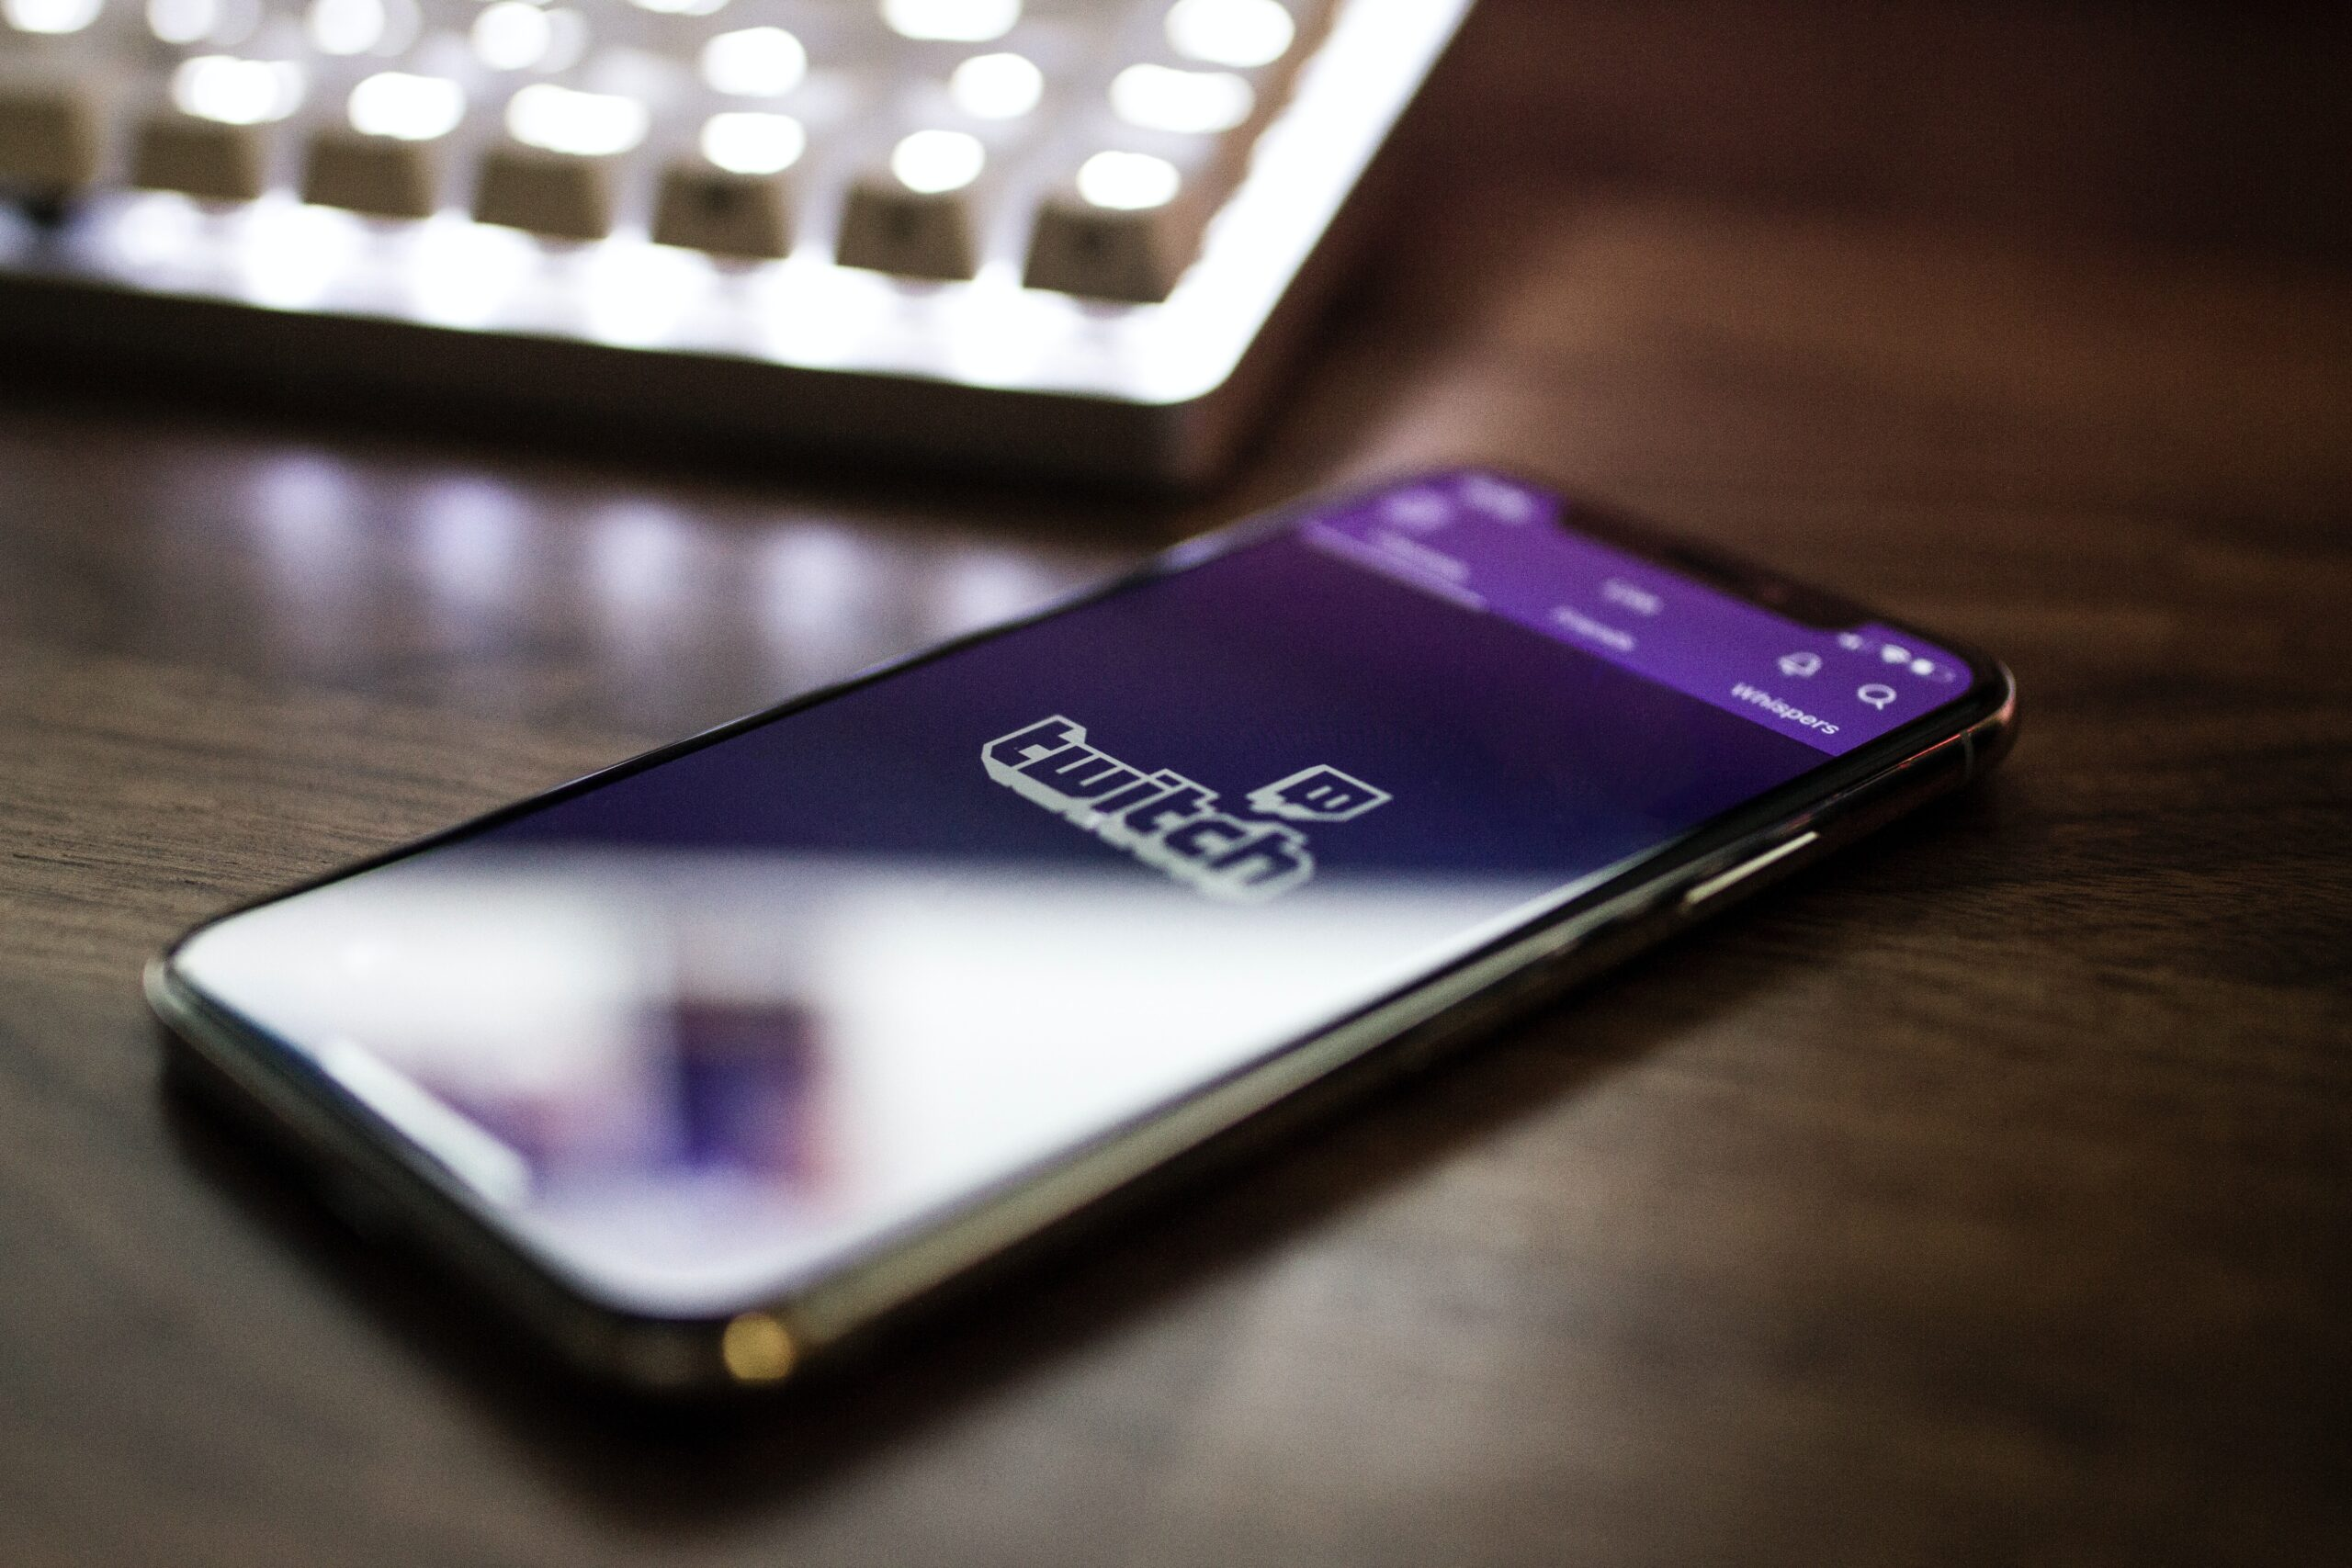 twitch logo on a mobile phone, using royalty free music for streaming on twitch